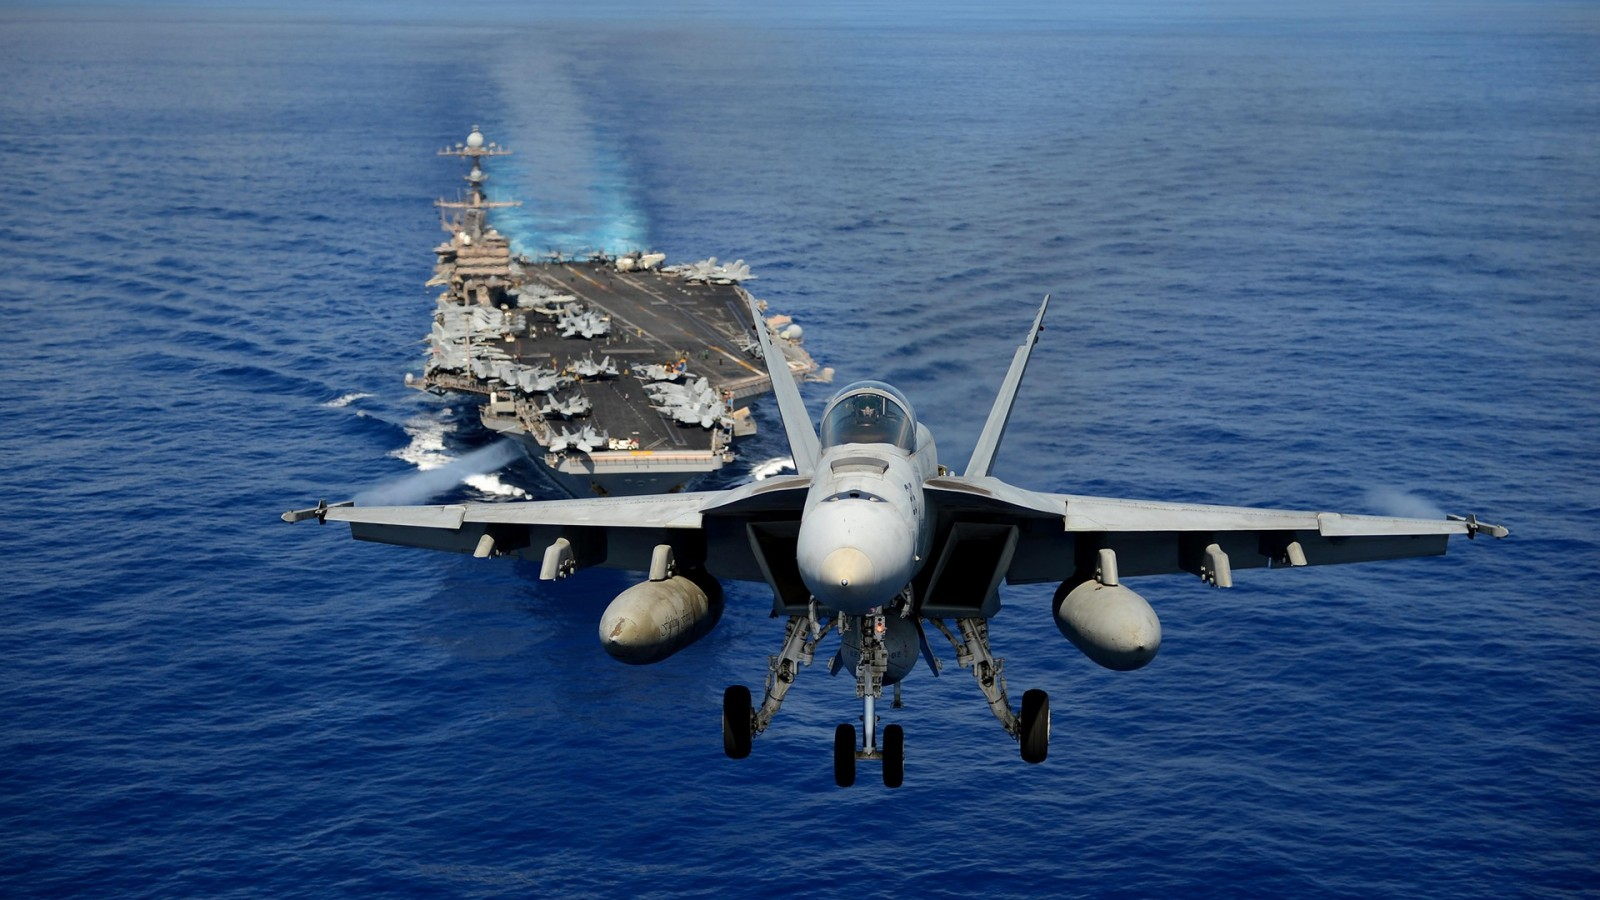 Amazing HD Navy Wallpapers and Backgrounds for Download 1600x900